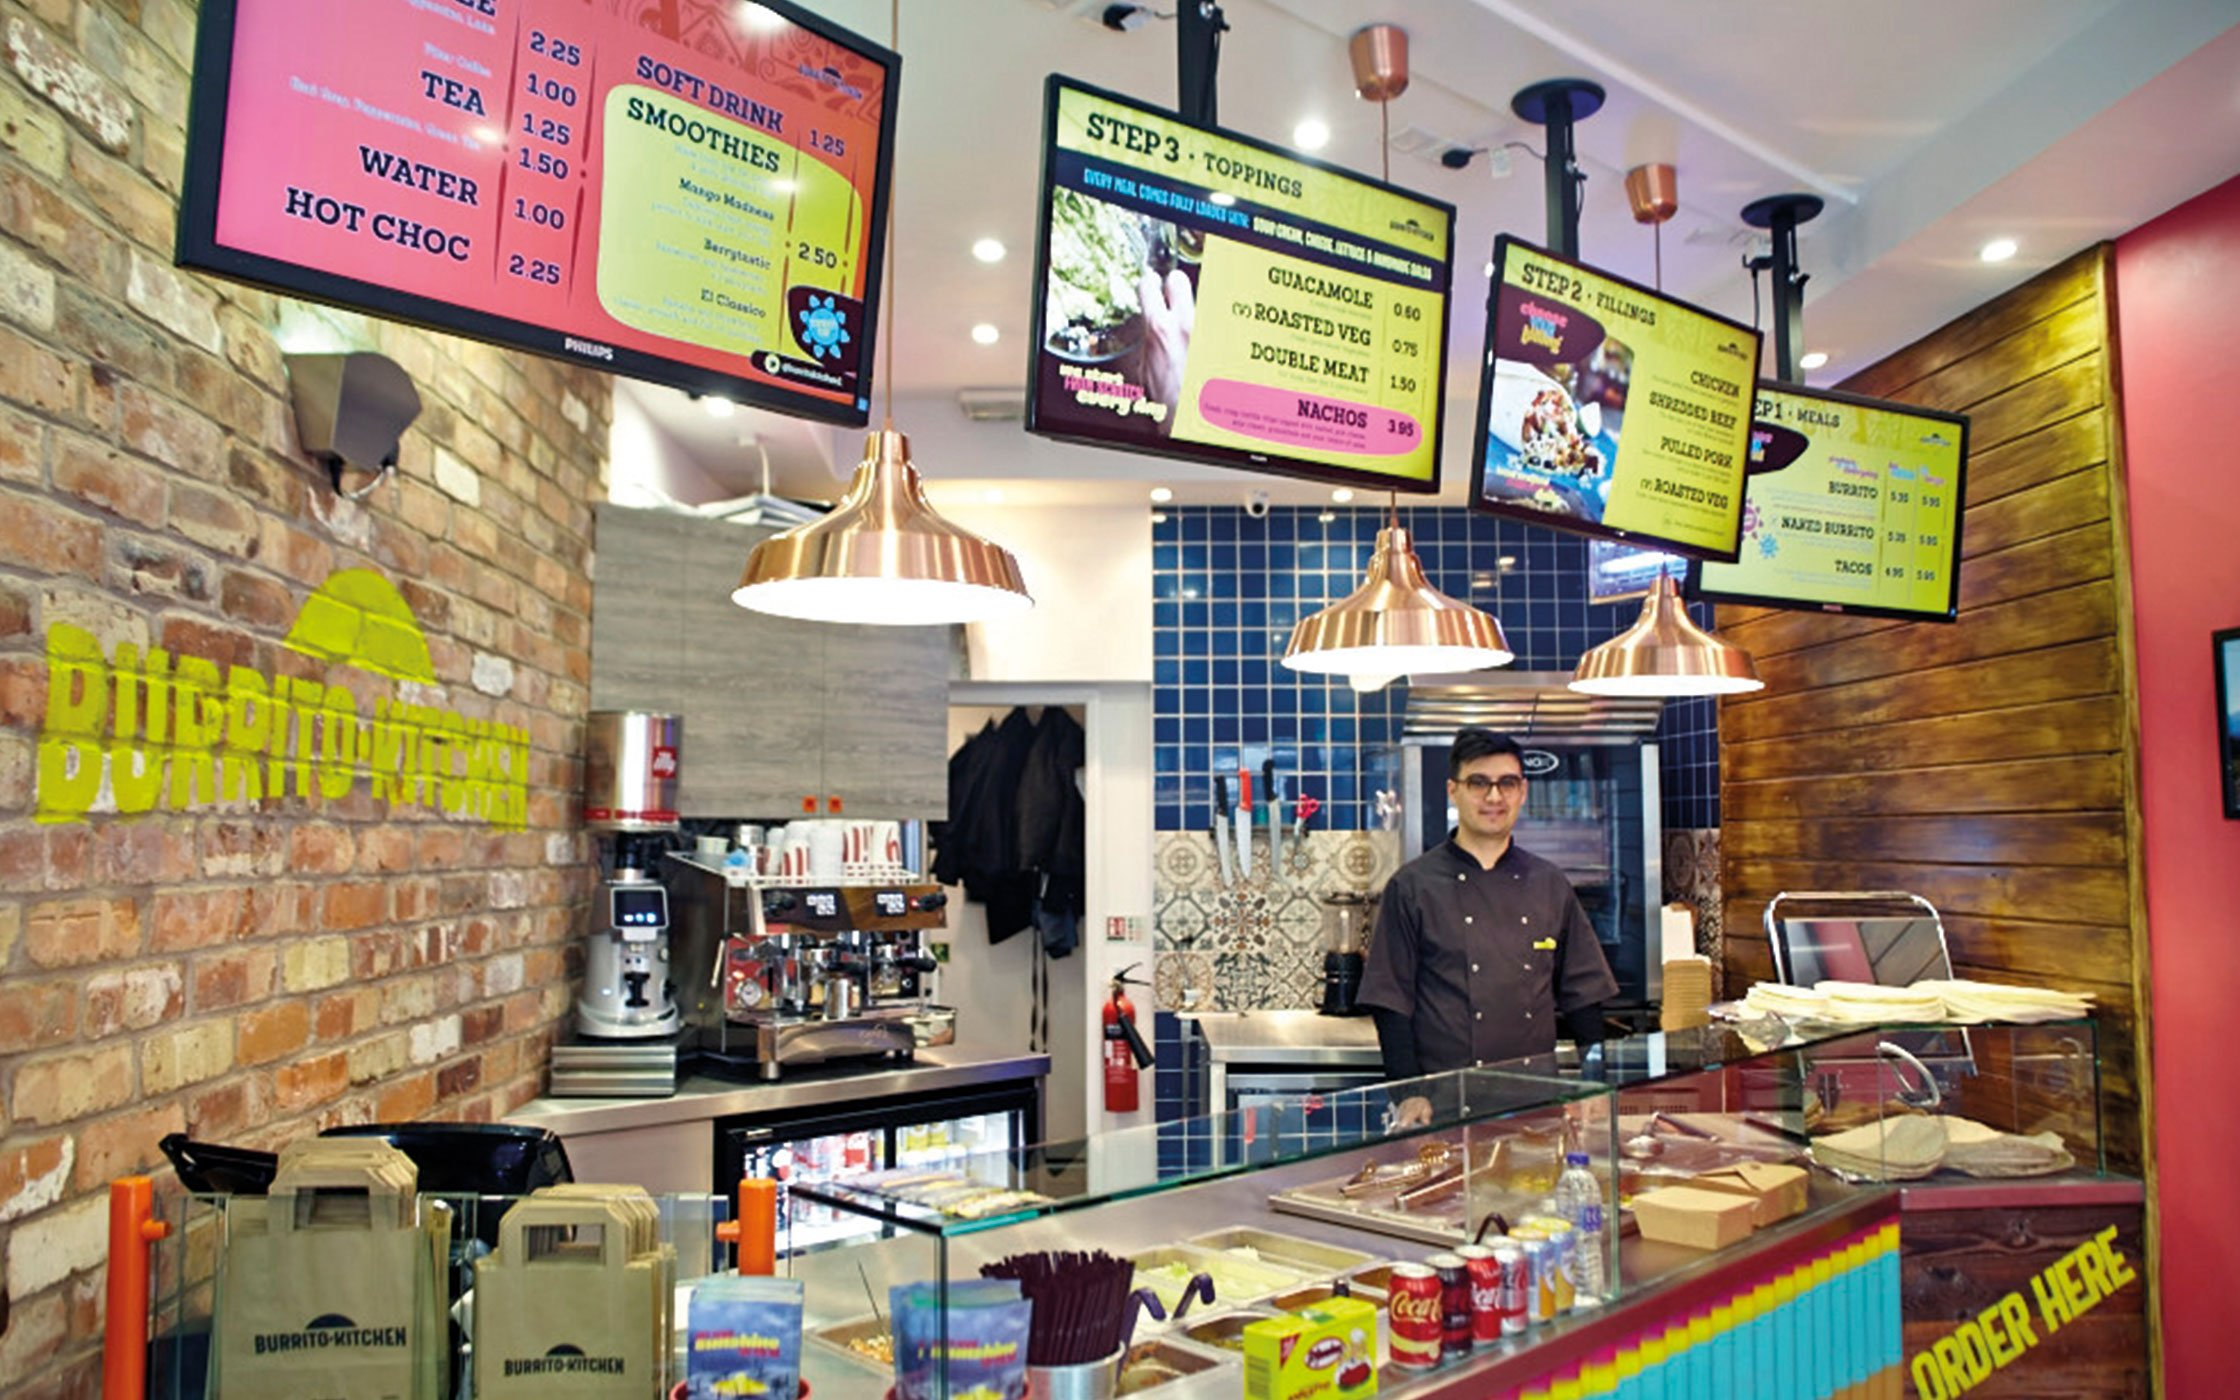 Branded menus and interior space for Burrito Kitchen